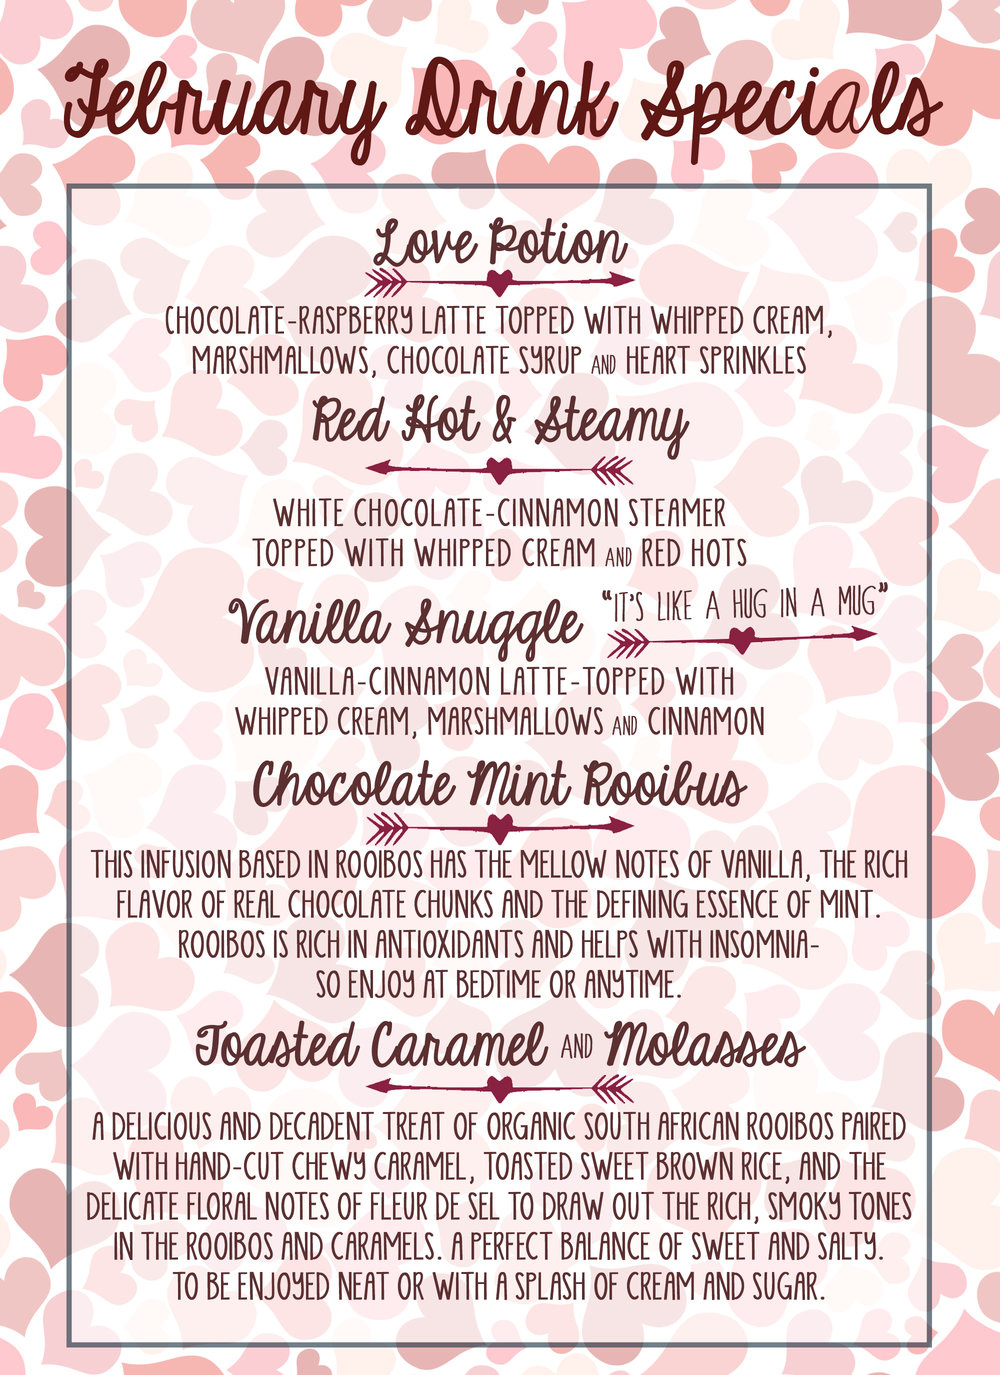 February Drink Specials!